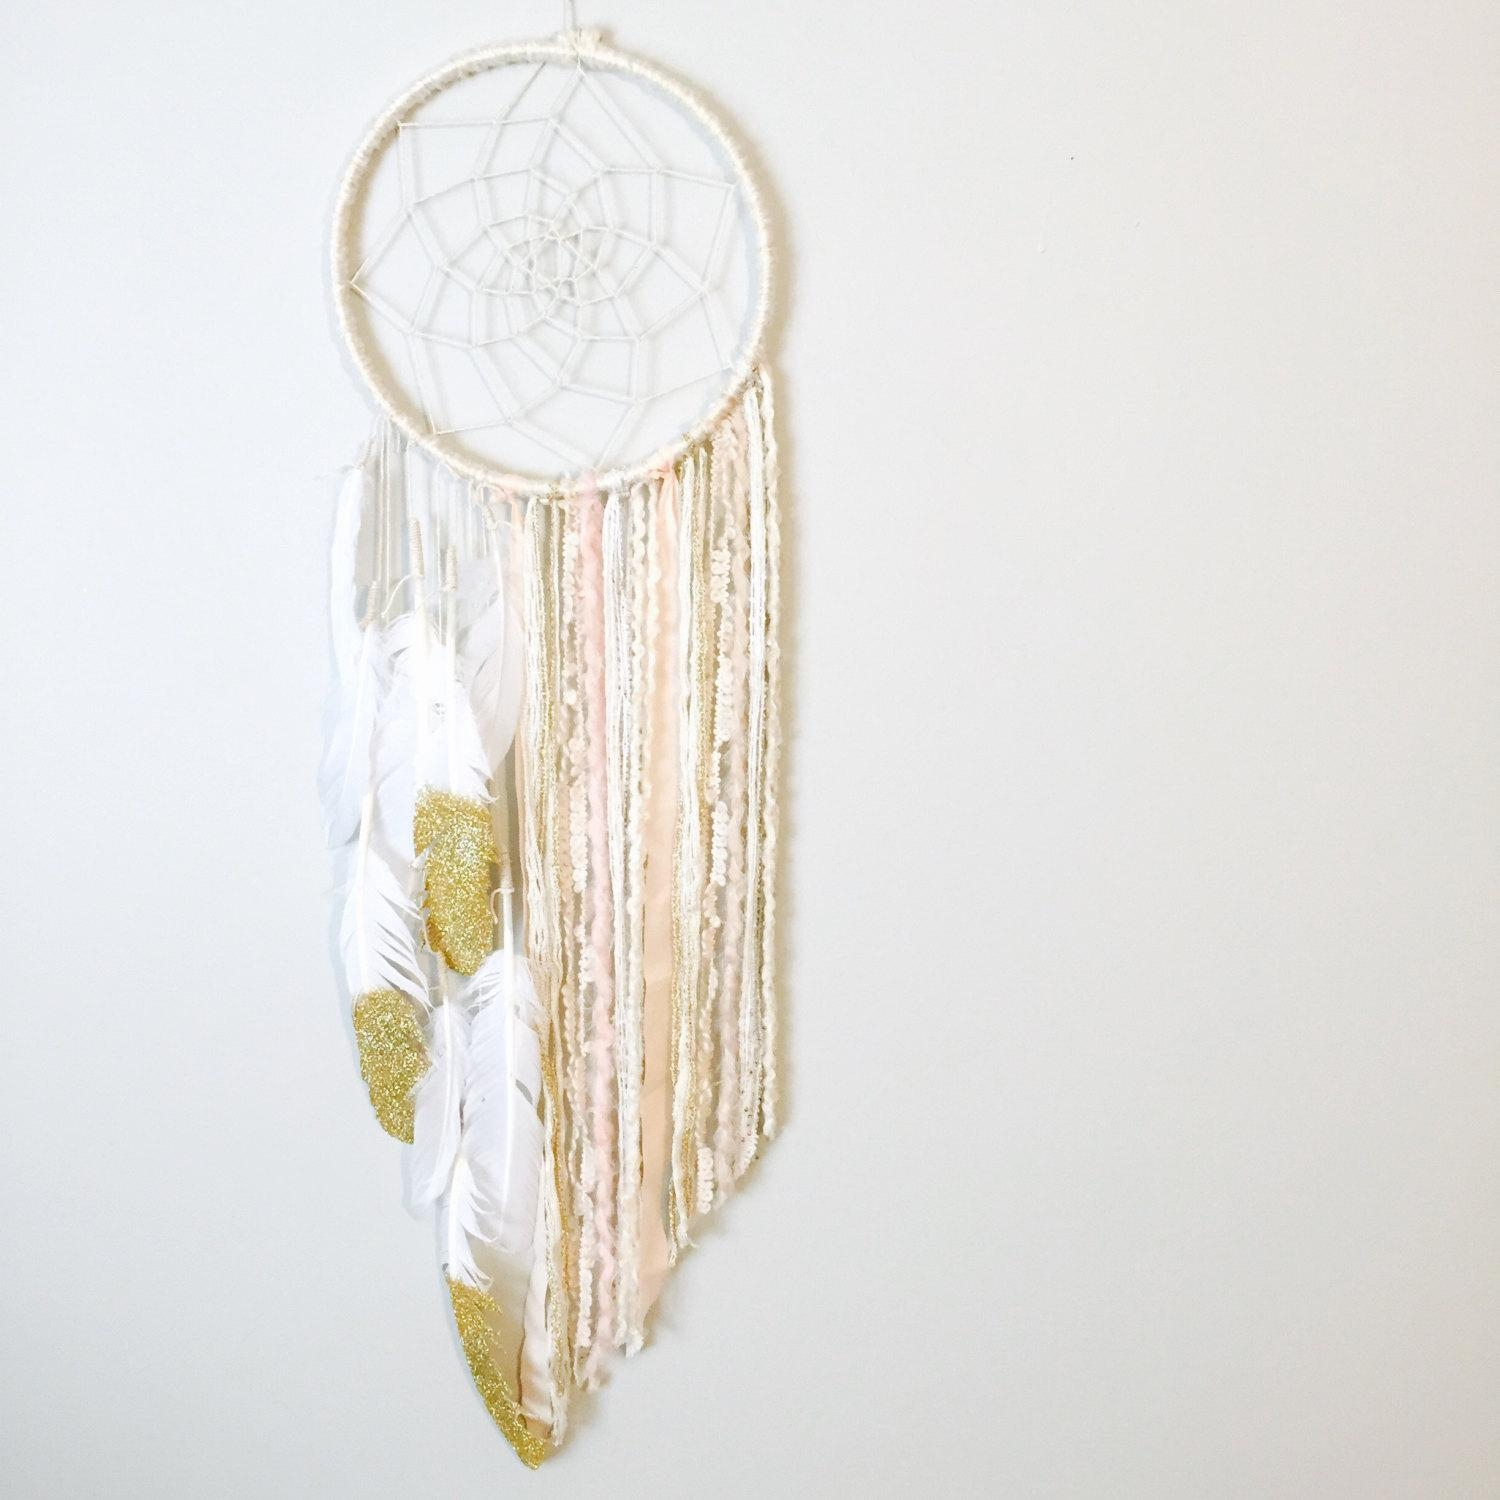 Dreamcatcher Unique Bohemian Dream Catcher Boho Chic In Boho Chic Wall Art (Image 10 of 20)